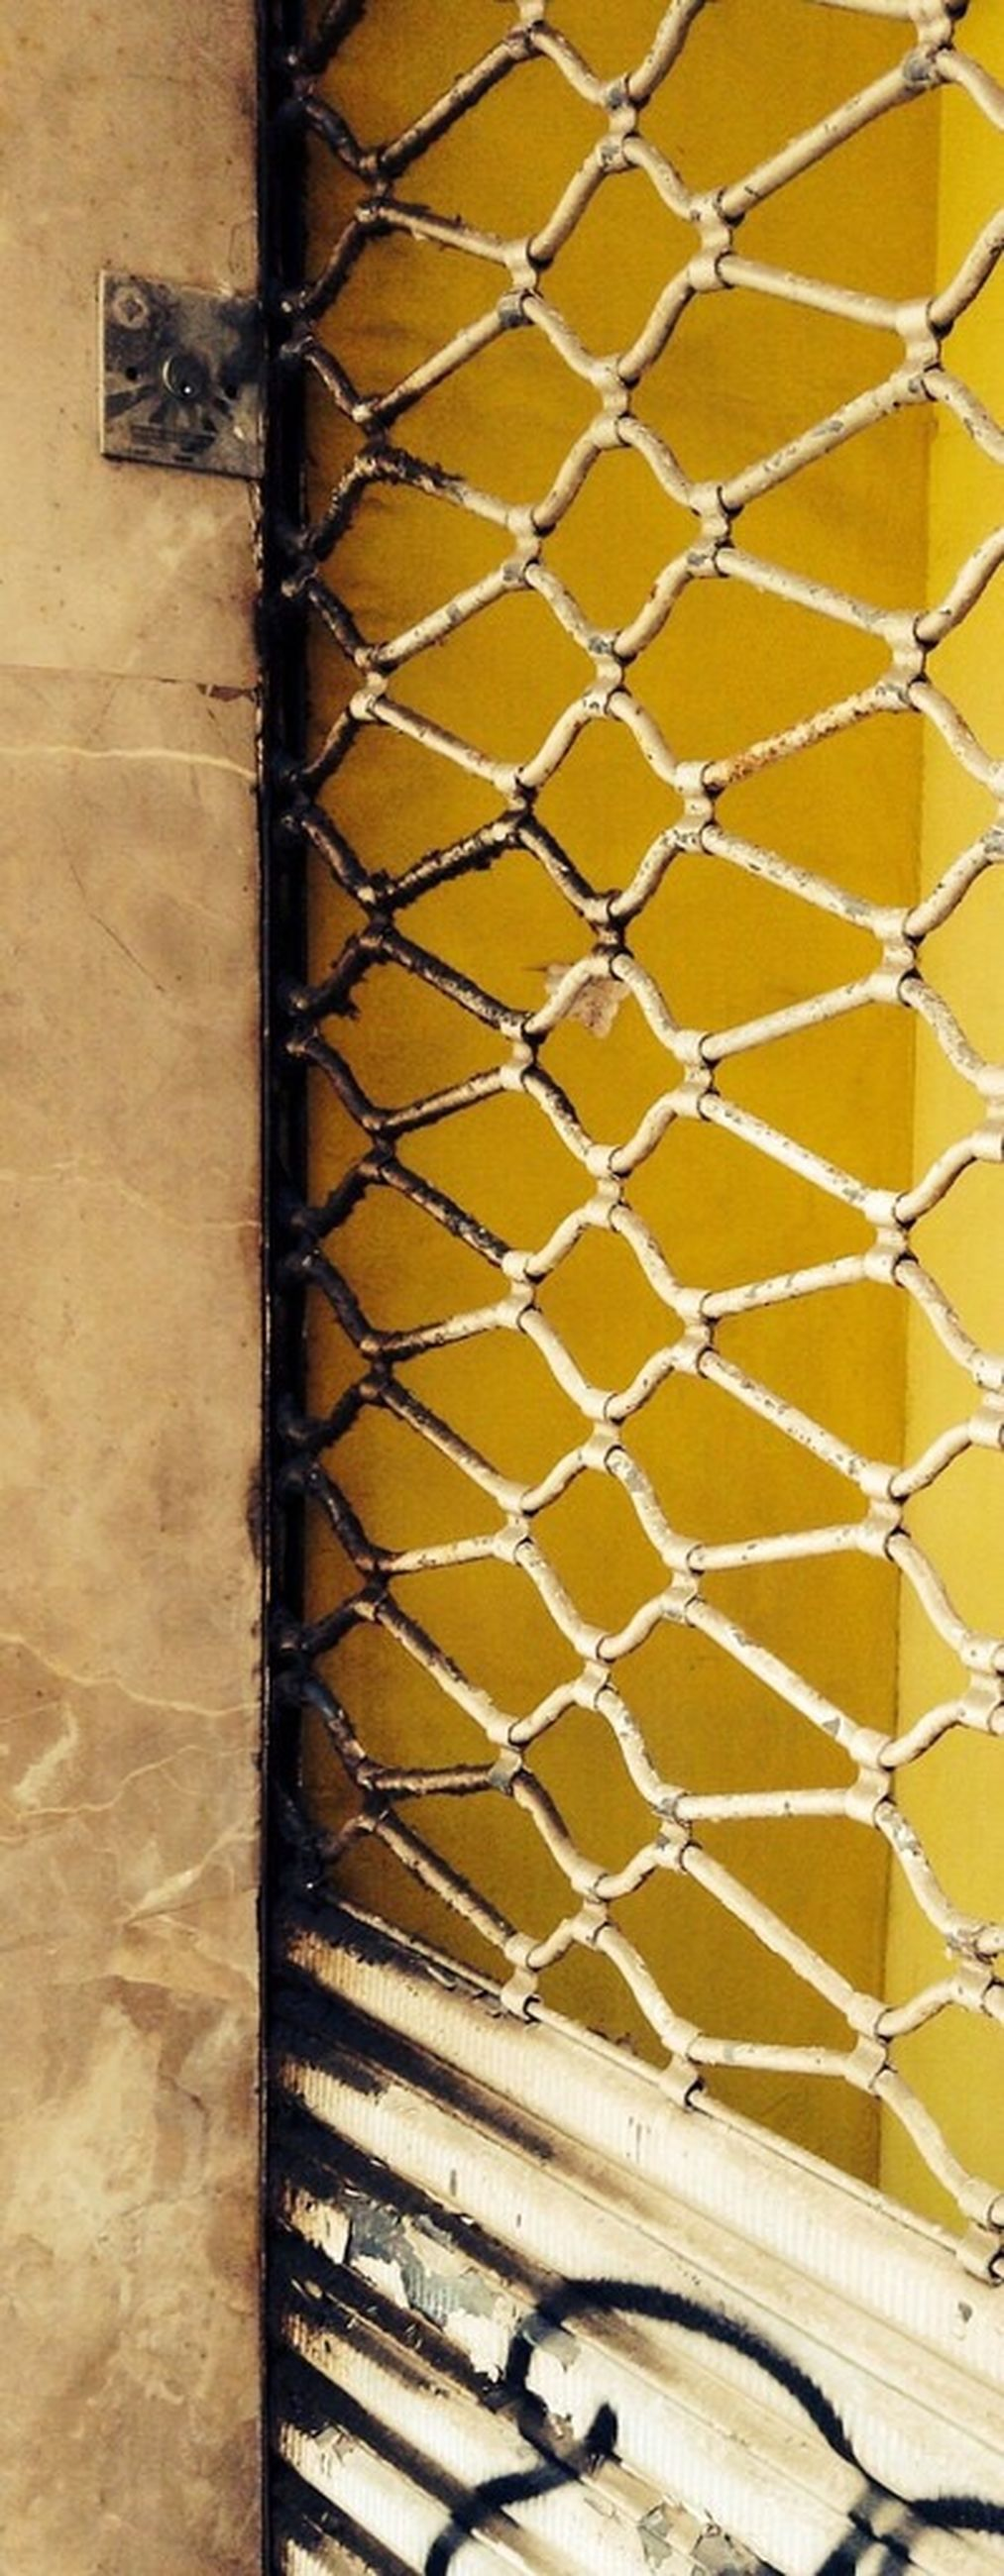 metal, pattern, wall - building feature, metallic, built structure, indoors, architecture, wall, full frame, textured, protection, close-up, no people, day, safety, sunlight, backgrounds, metal grate, brick wall